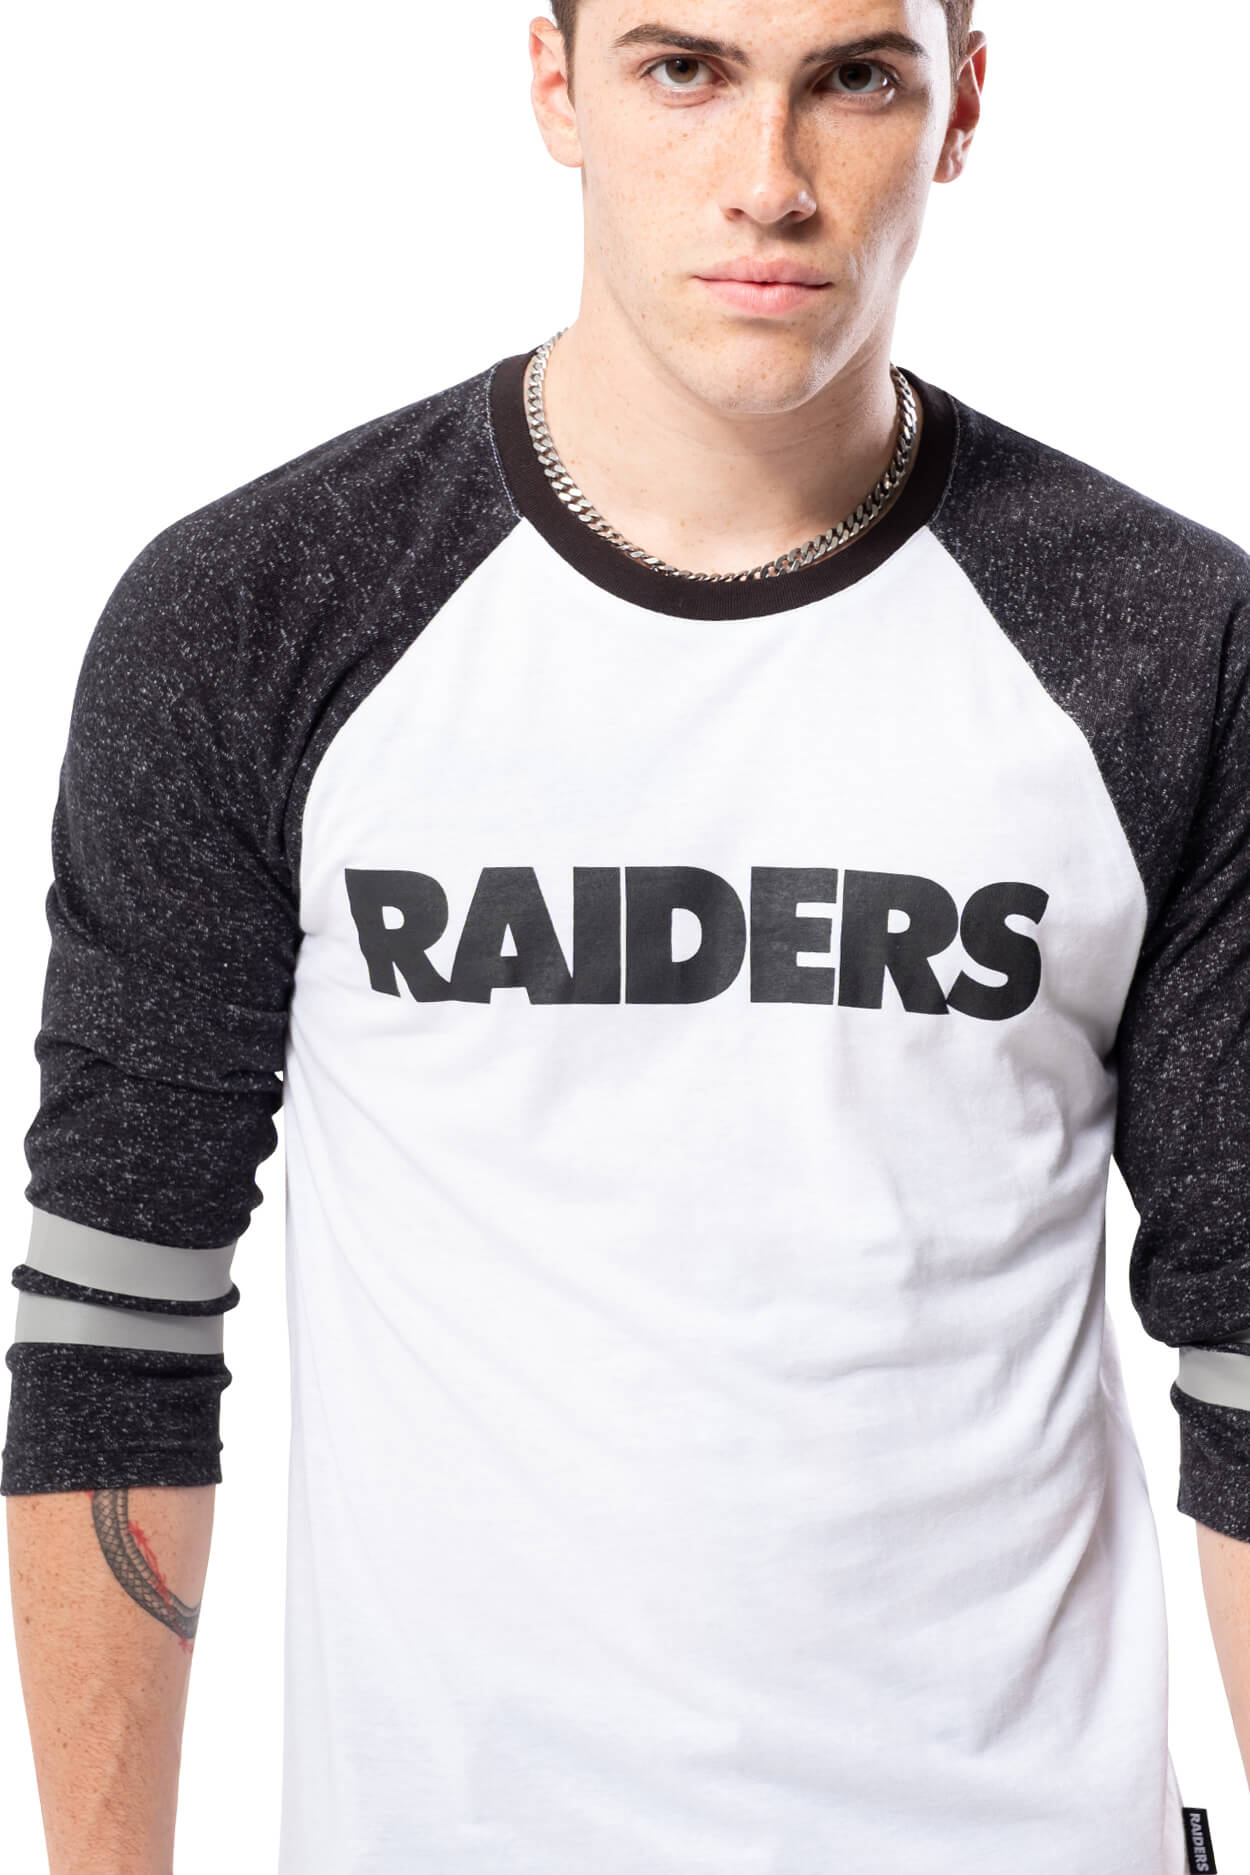 NFL Oakland Raiders Men's Baseball Tee|Oakland Raiders